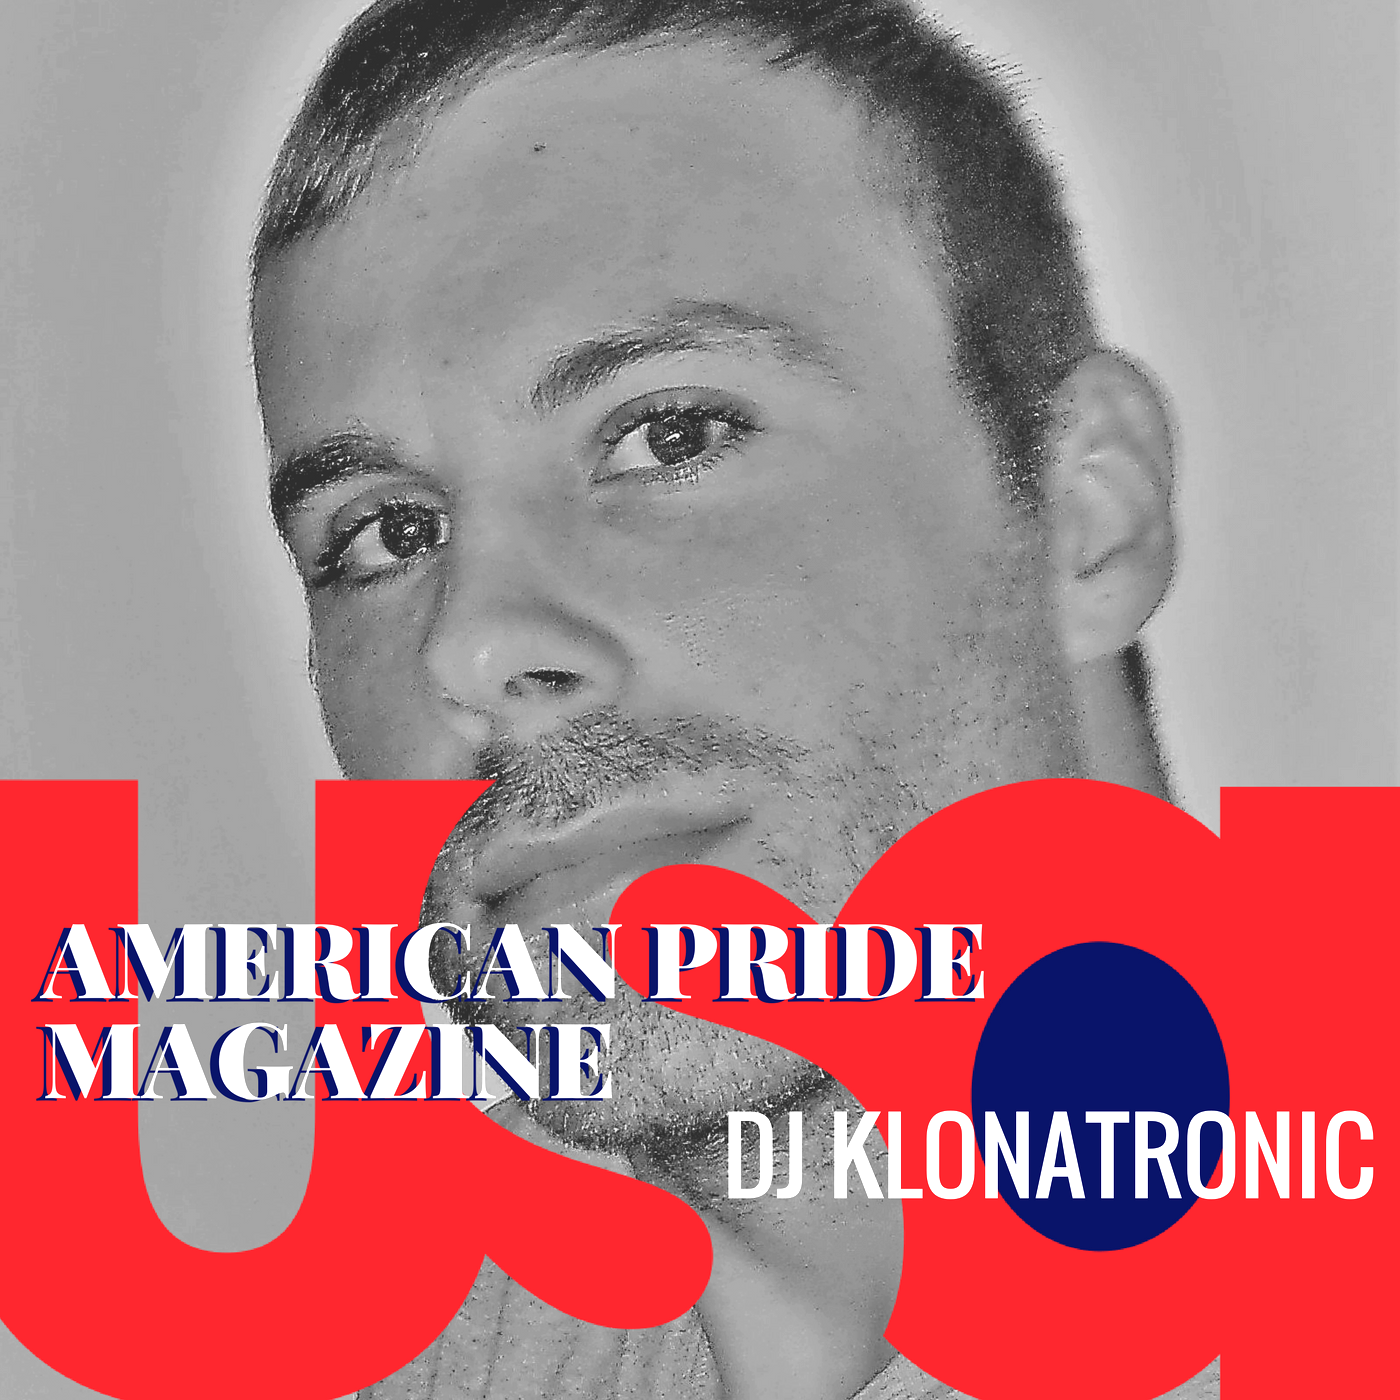 DJ Klonatronic Becoming Better Than Average